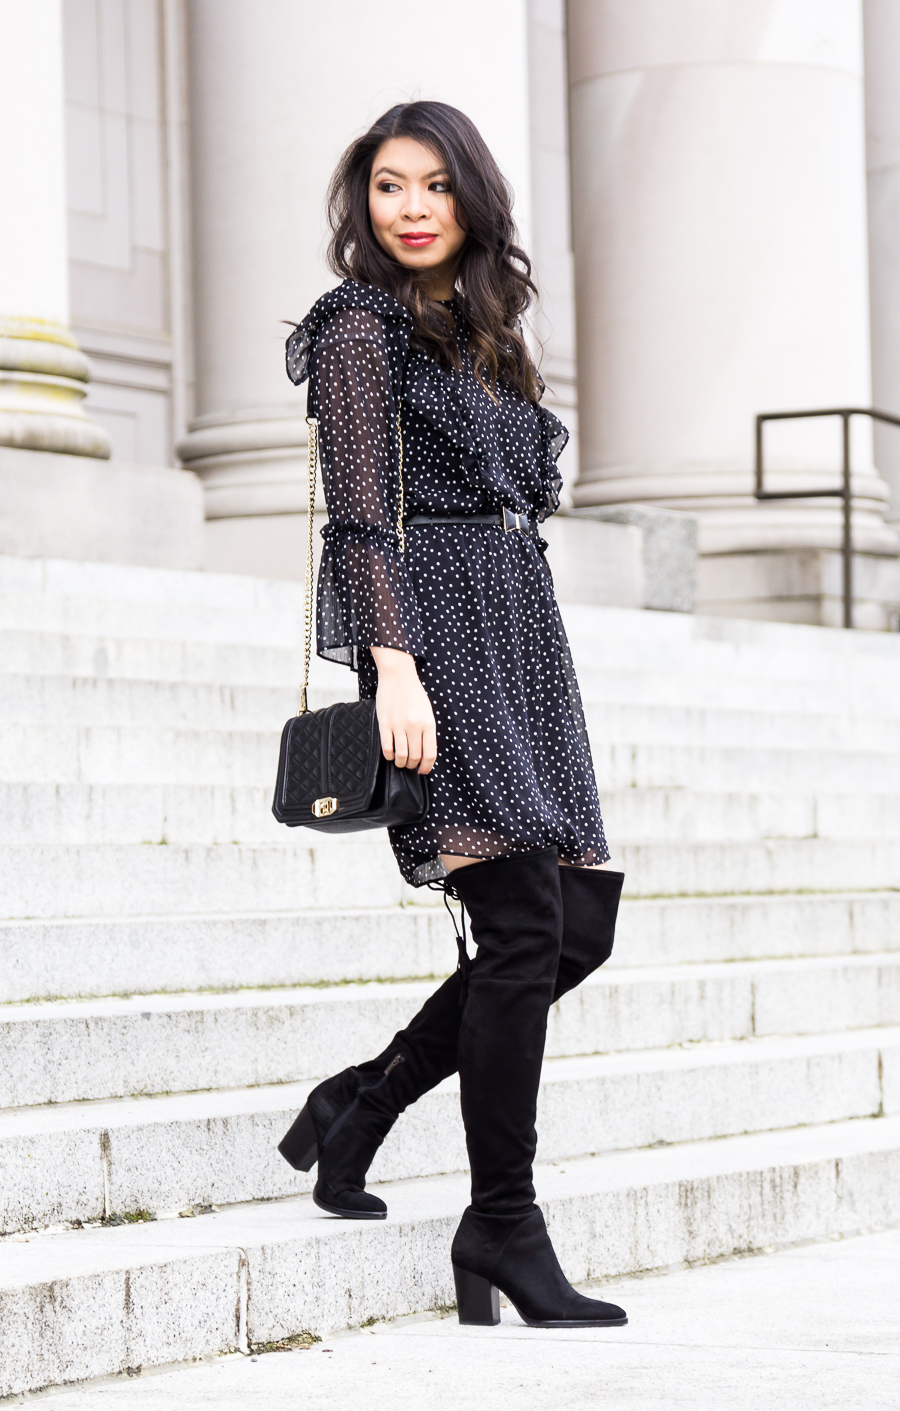 Topshop ruffle polka dot dress, Marc Fisher Alinda over the knee boots, cute chic outfit, petite fashion blog